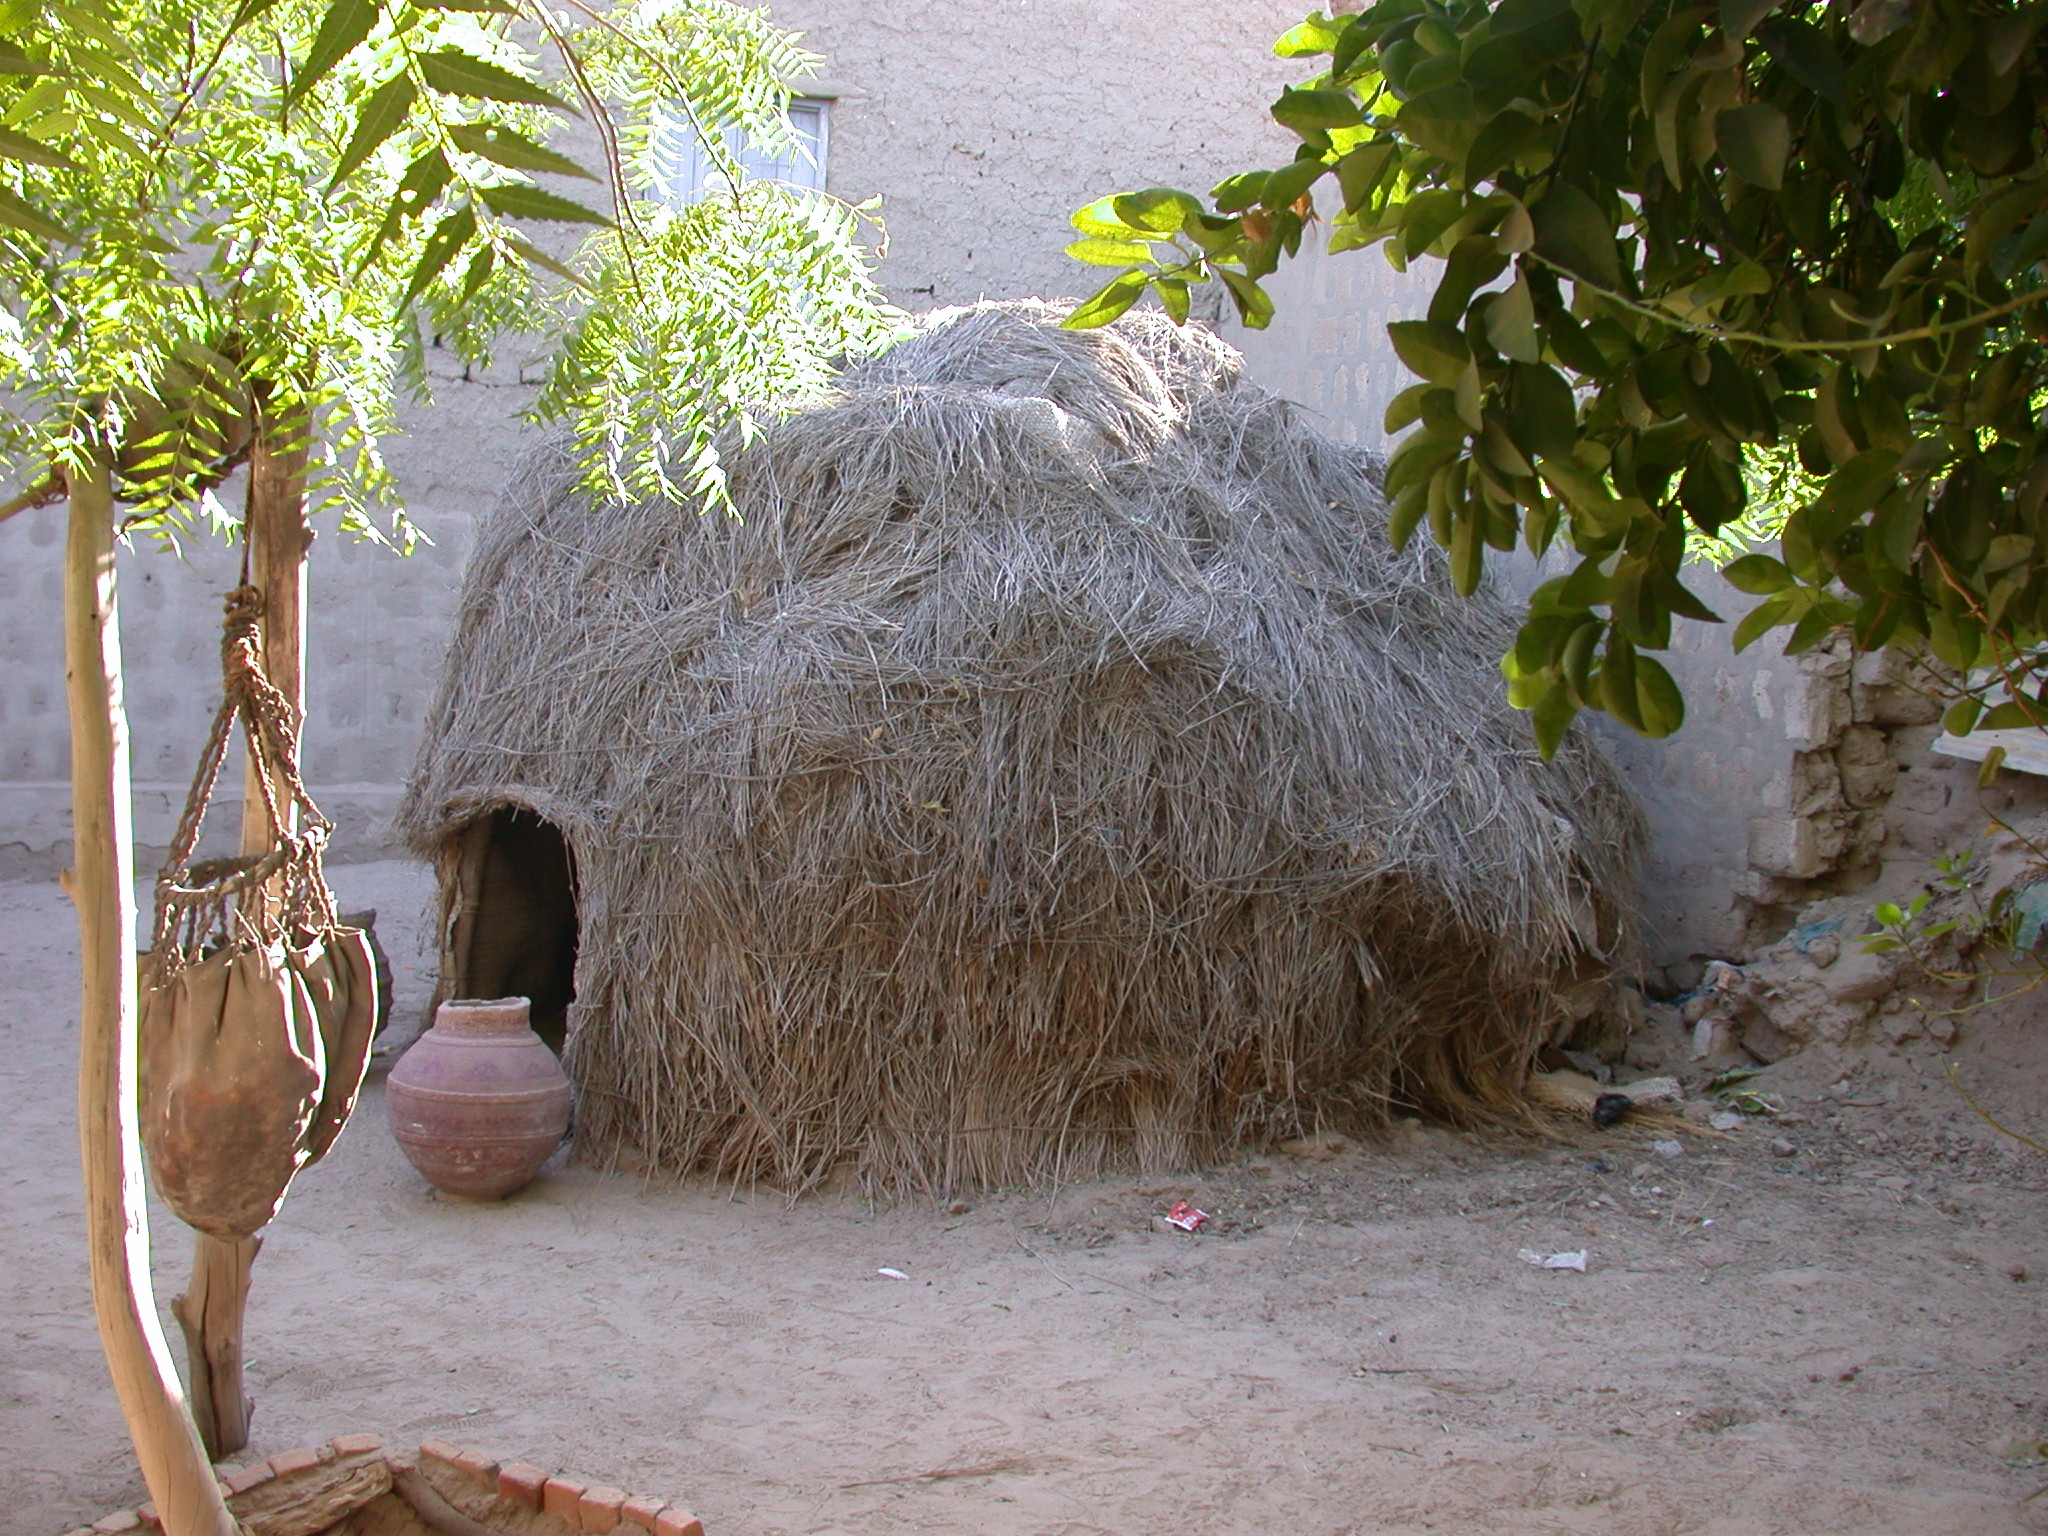 Water Bag and Thatch Hut at Reputed Site of Well of Boctou Whence Timbuktu Got Its Name, Timbuktu, Mali